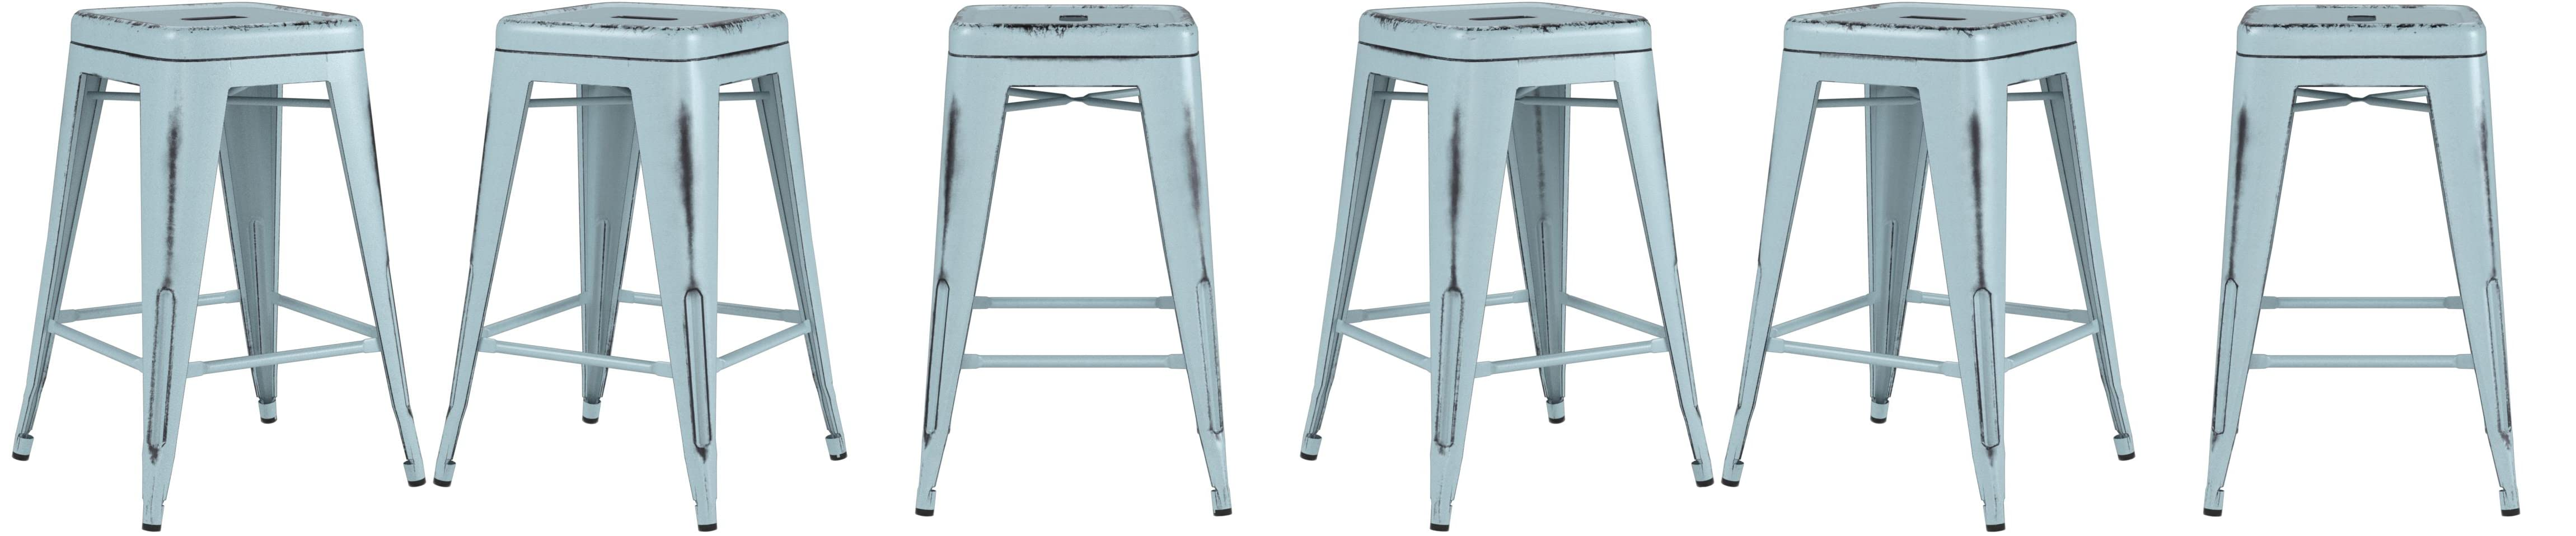 Amazon.com: Flash Furniture 24\'\' High Backless Distressed Green-Blue ...